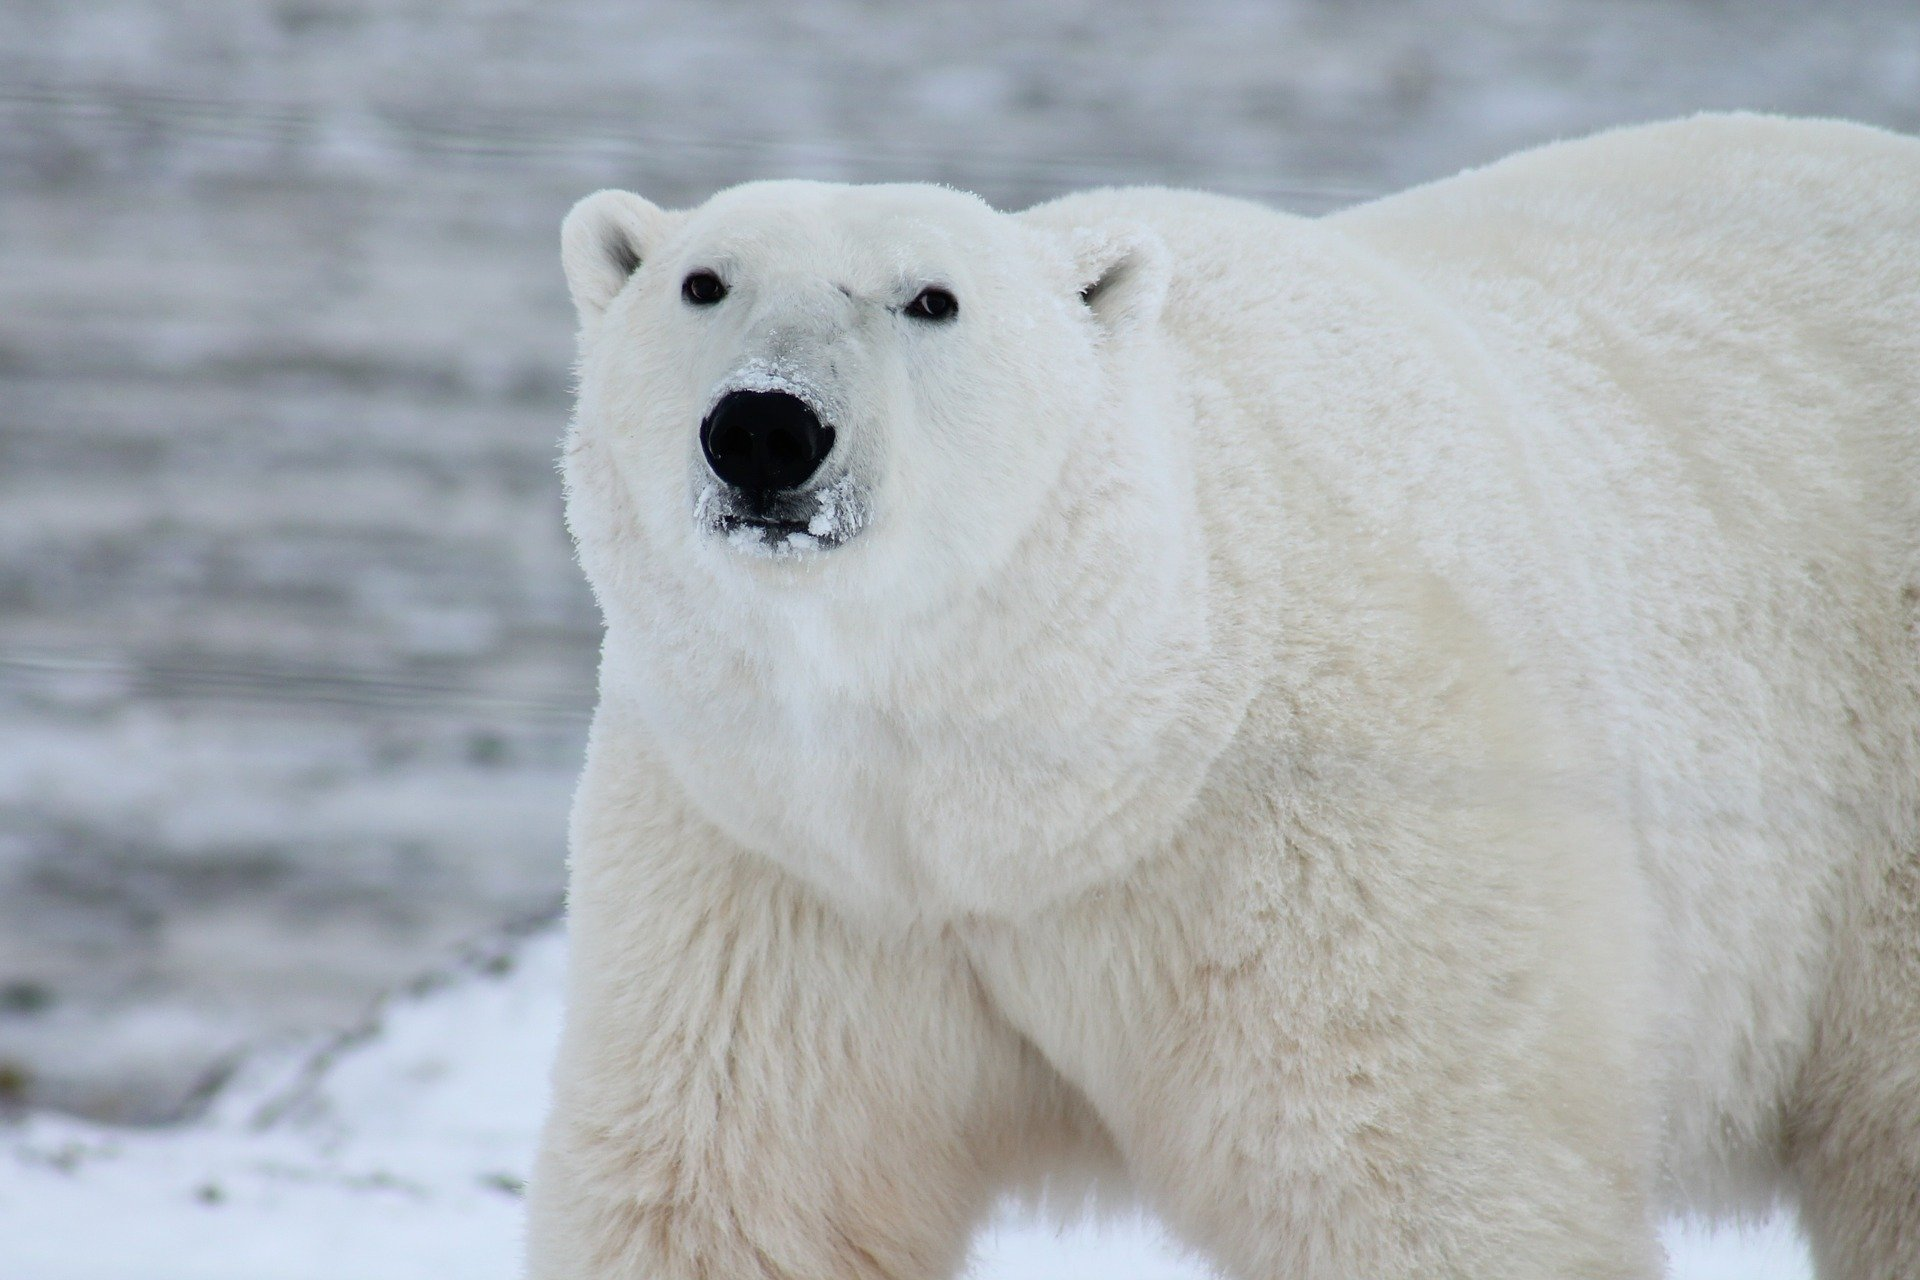 Pictured - A photograph of a polar bear in the snow | Source: Pixabay